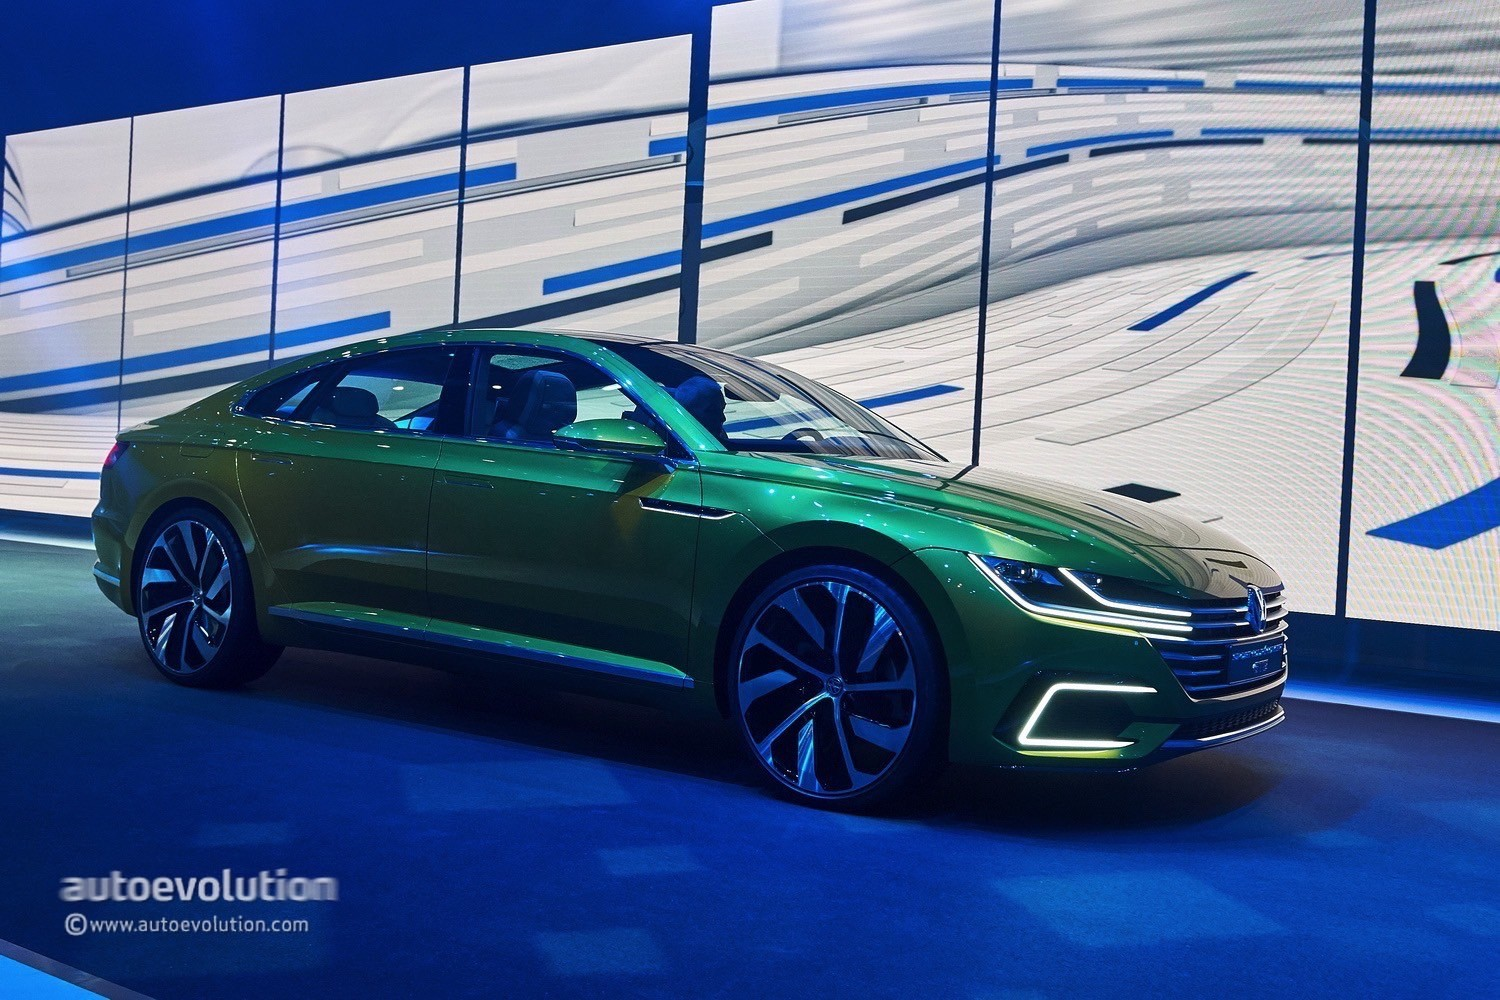 volkswagen coupe arteon concept vw gte shooting brake door four seat awd turbo could revealed v6 hybrid version autoevolution rendering